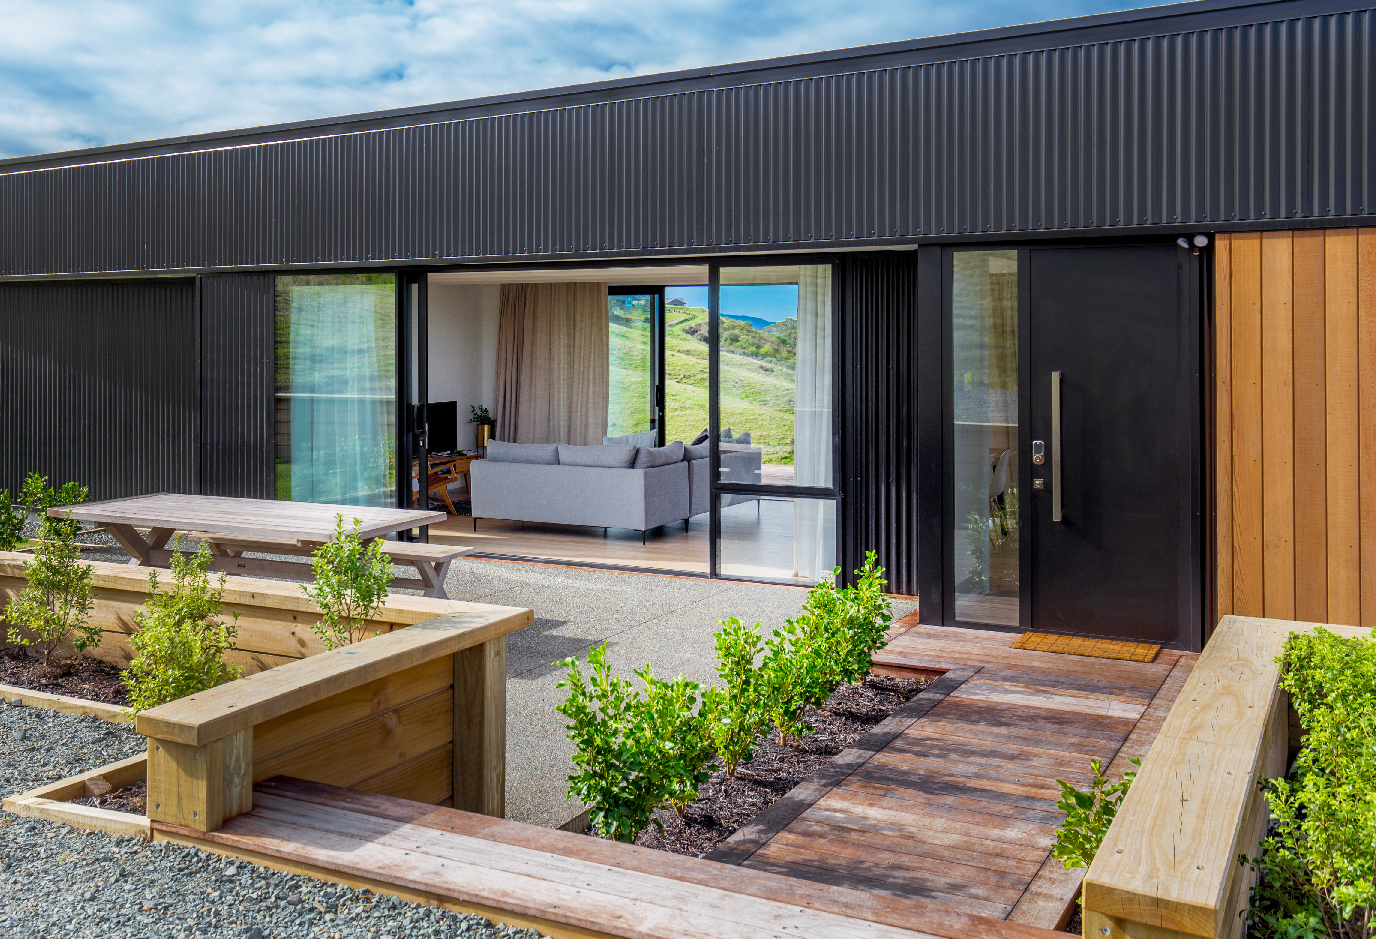 Gallery - Located just 10 minutes drive from central Blenheim, The Nineteenth is set on a private vineyard and features expansive views over surrounding vineyards, farmland and Marlborough Golf Course.